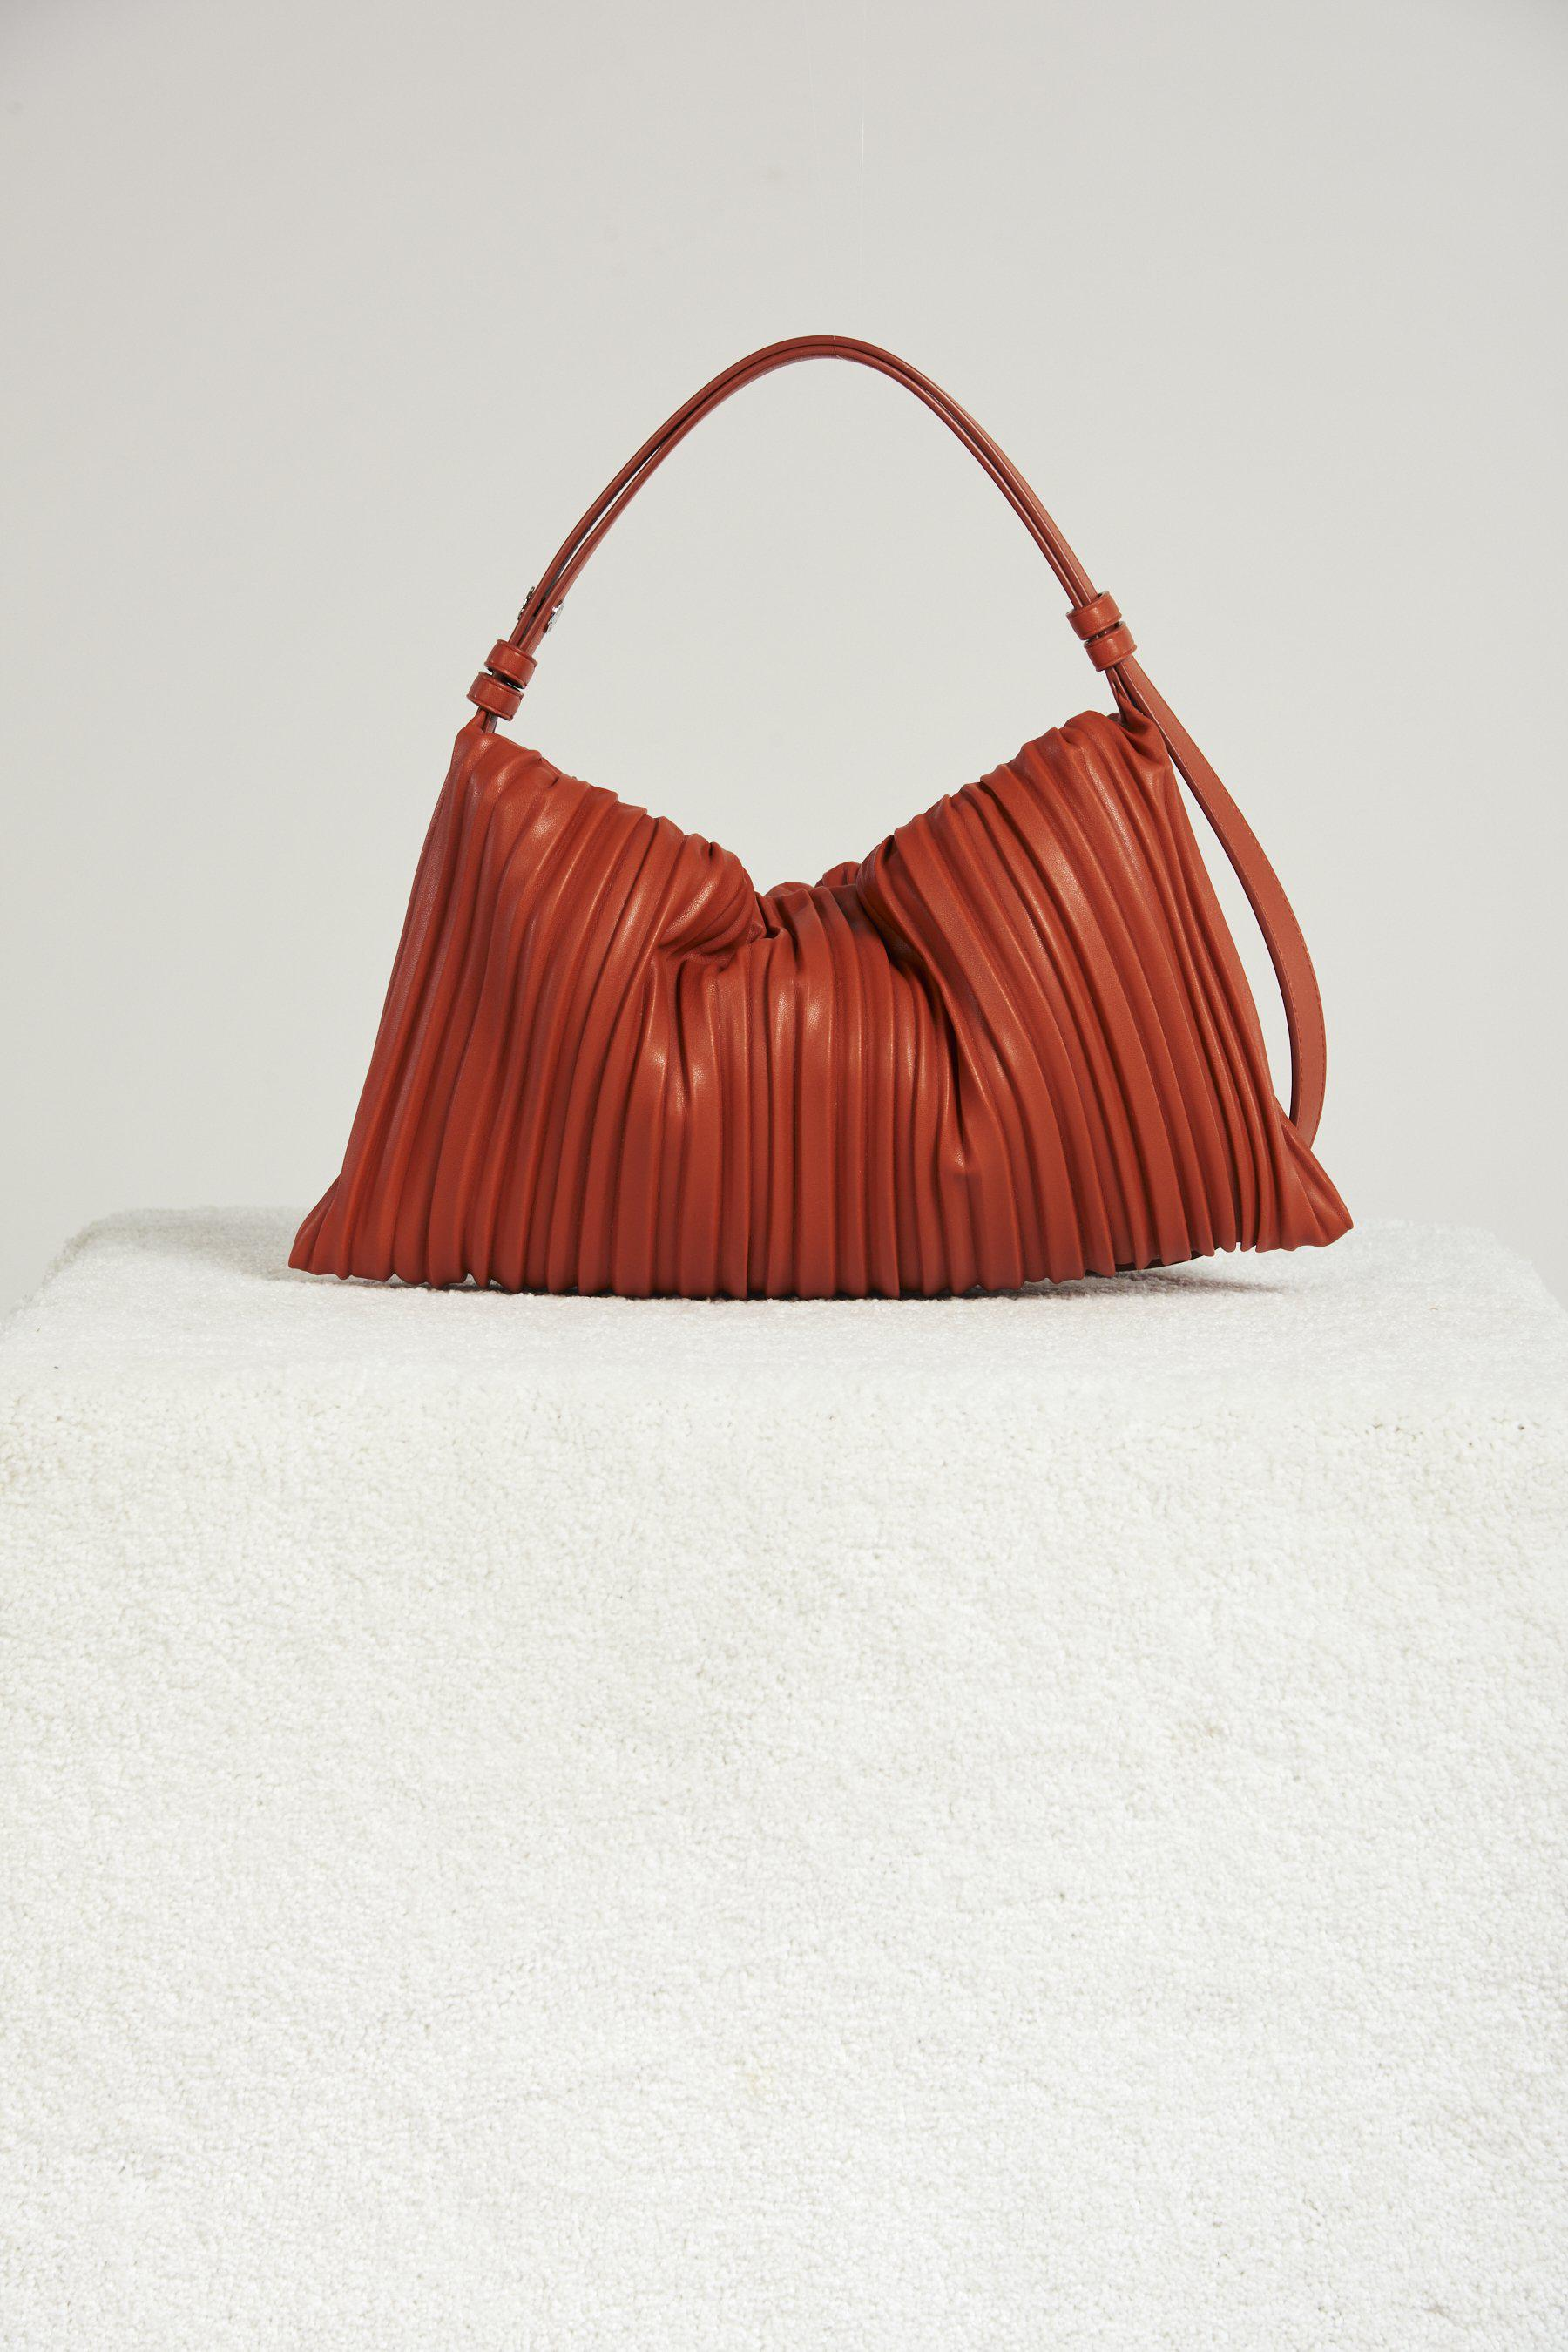 Vegan Puffin in Sepia Brown Pleated